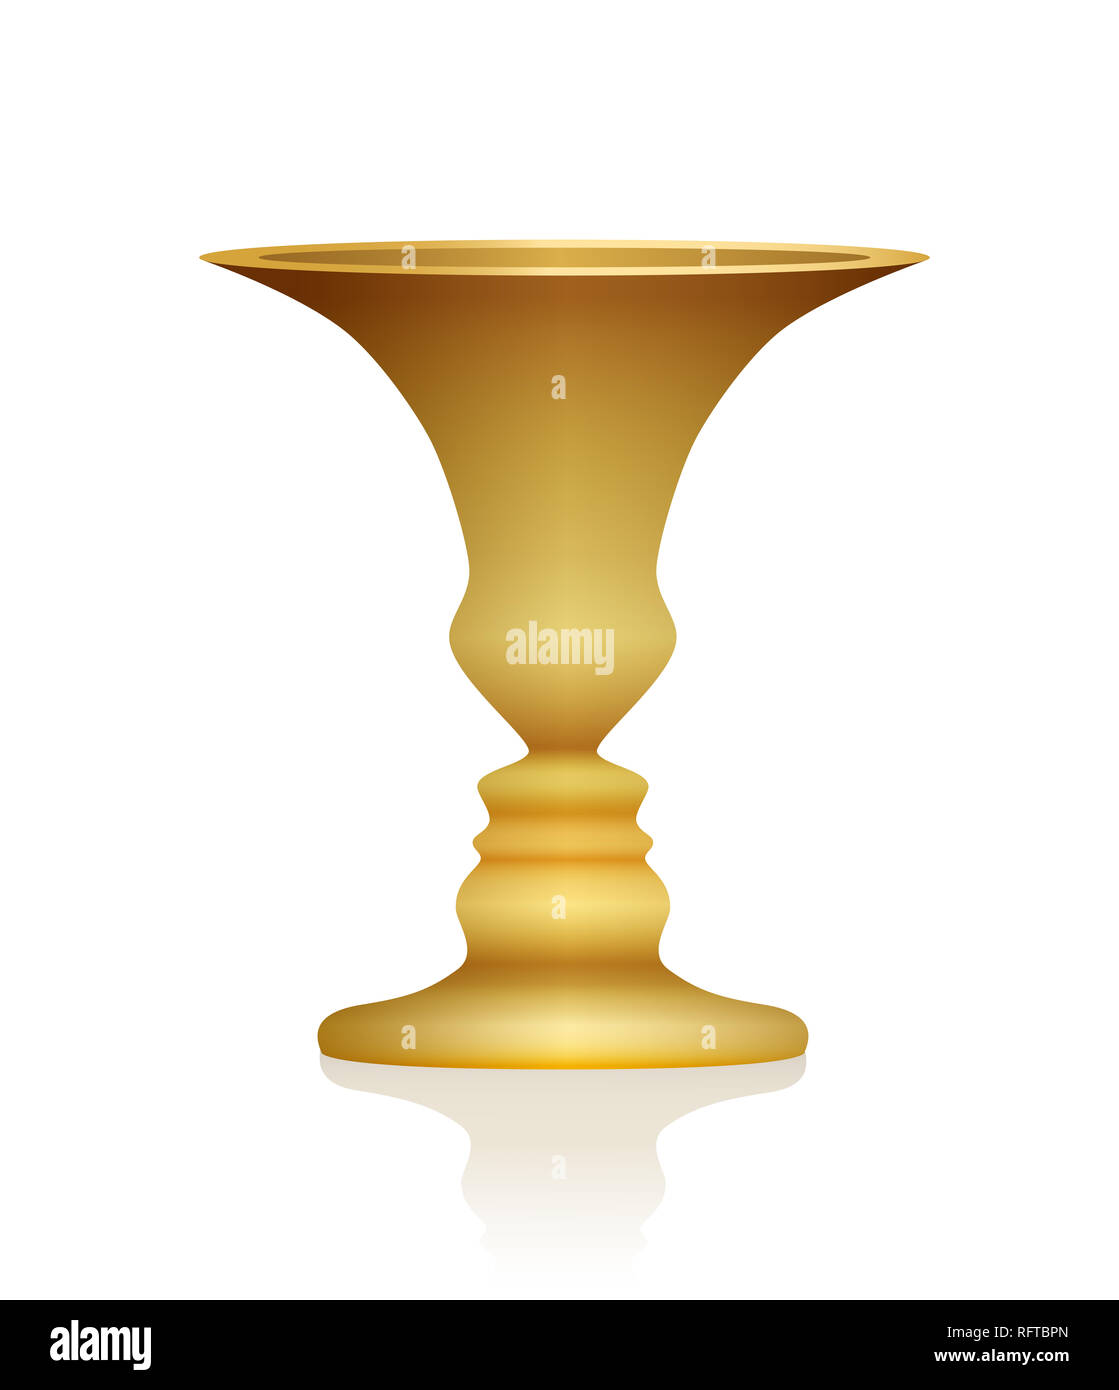 Optical illusion. Vase with two faces in profile. Golden colored three-dimensional chalice. In psychology known as identifying figure from background. Stock Photo